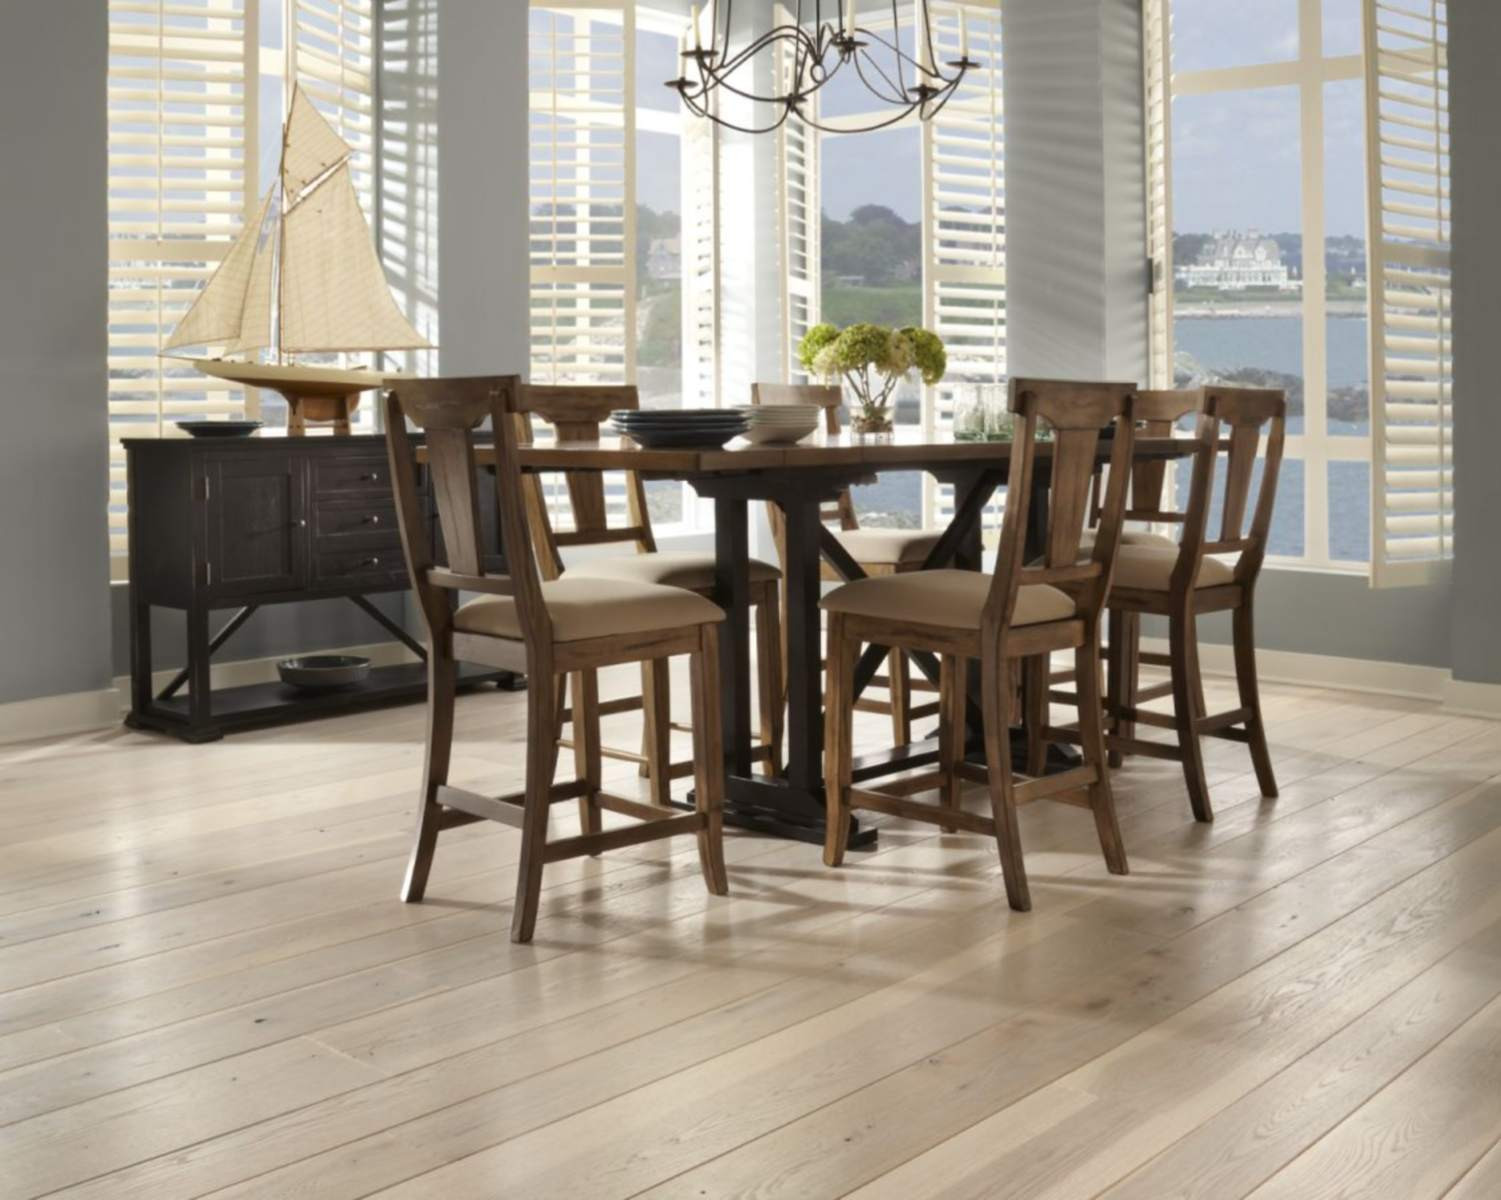 hardwood flooring manufacturers reviews of top 5 brands for solid hardwood flooring for a dining room with carlisle hickorys wide plank flooring